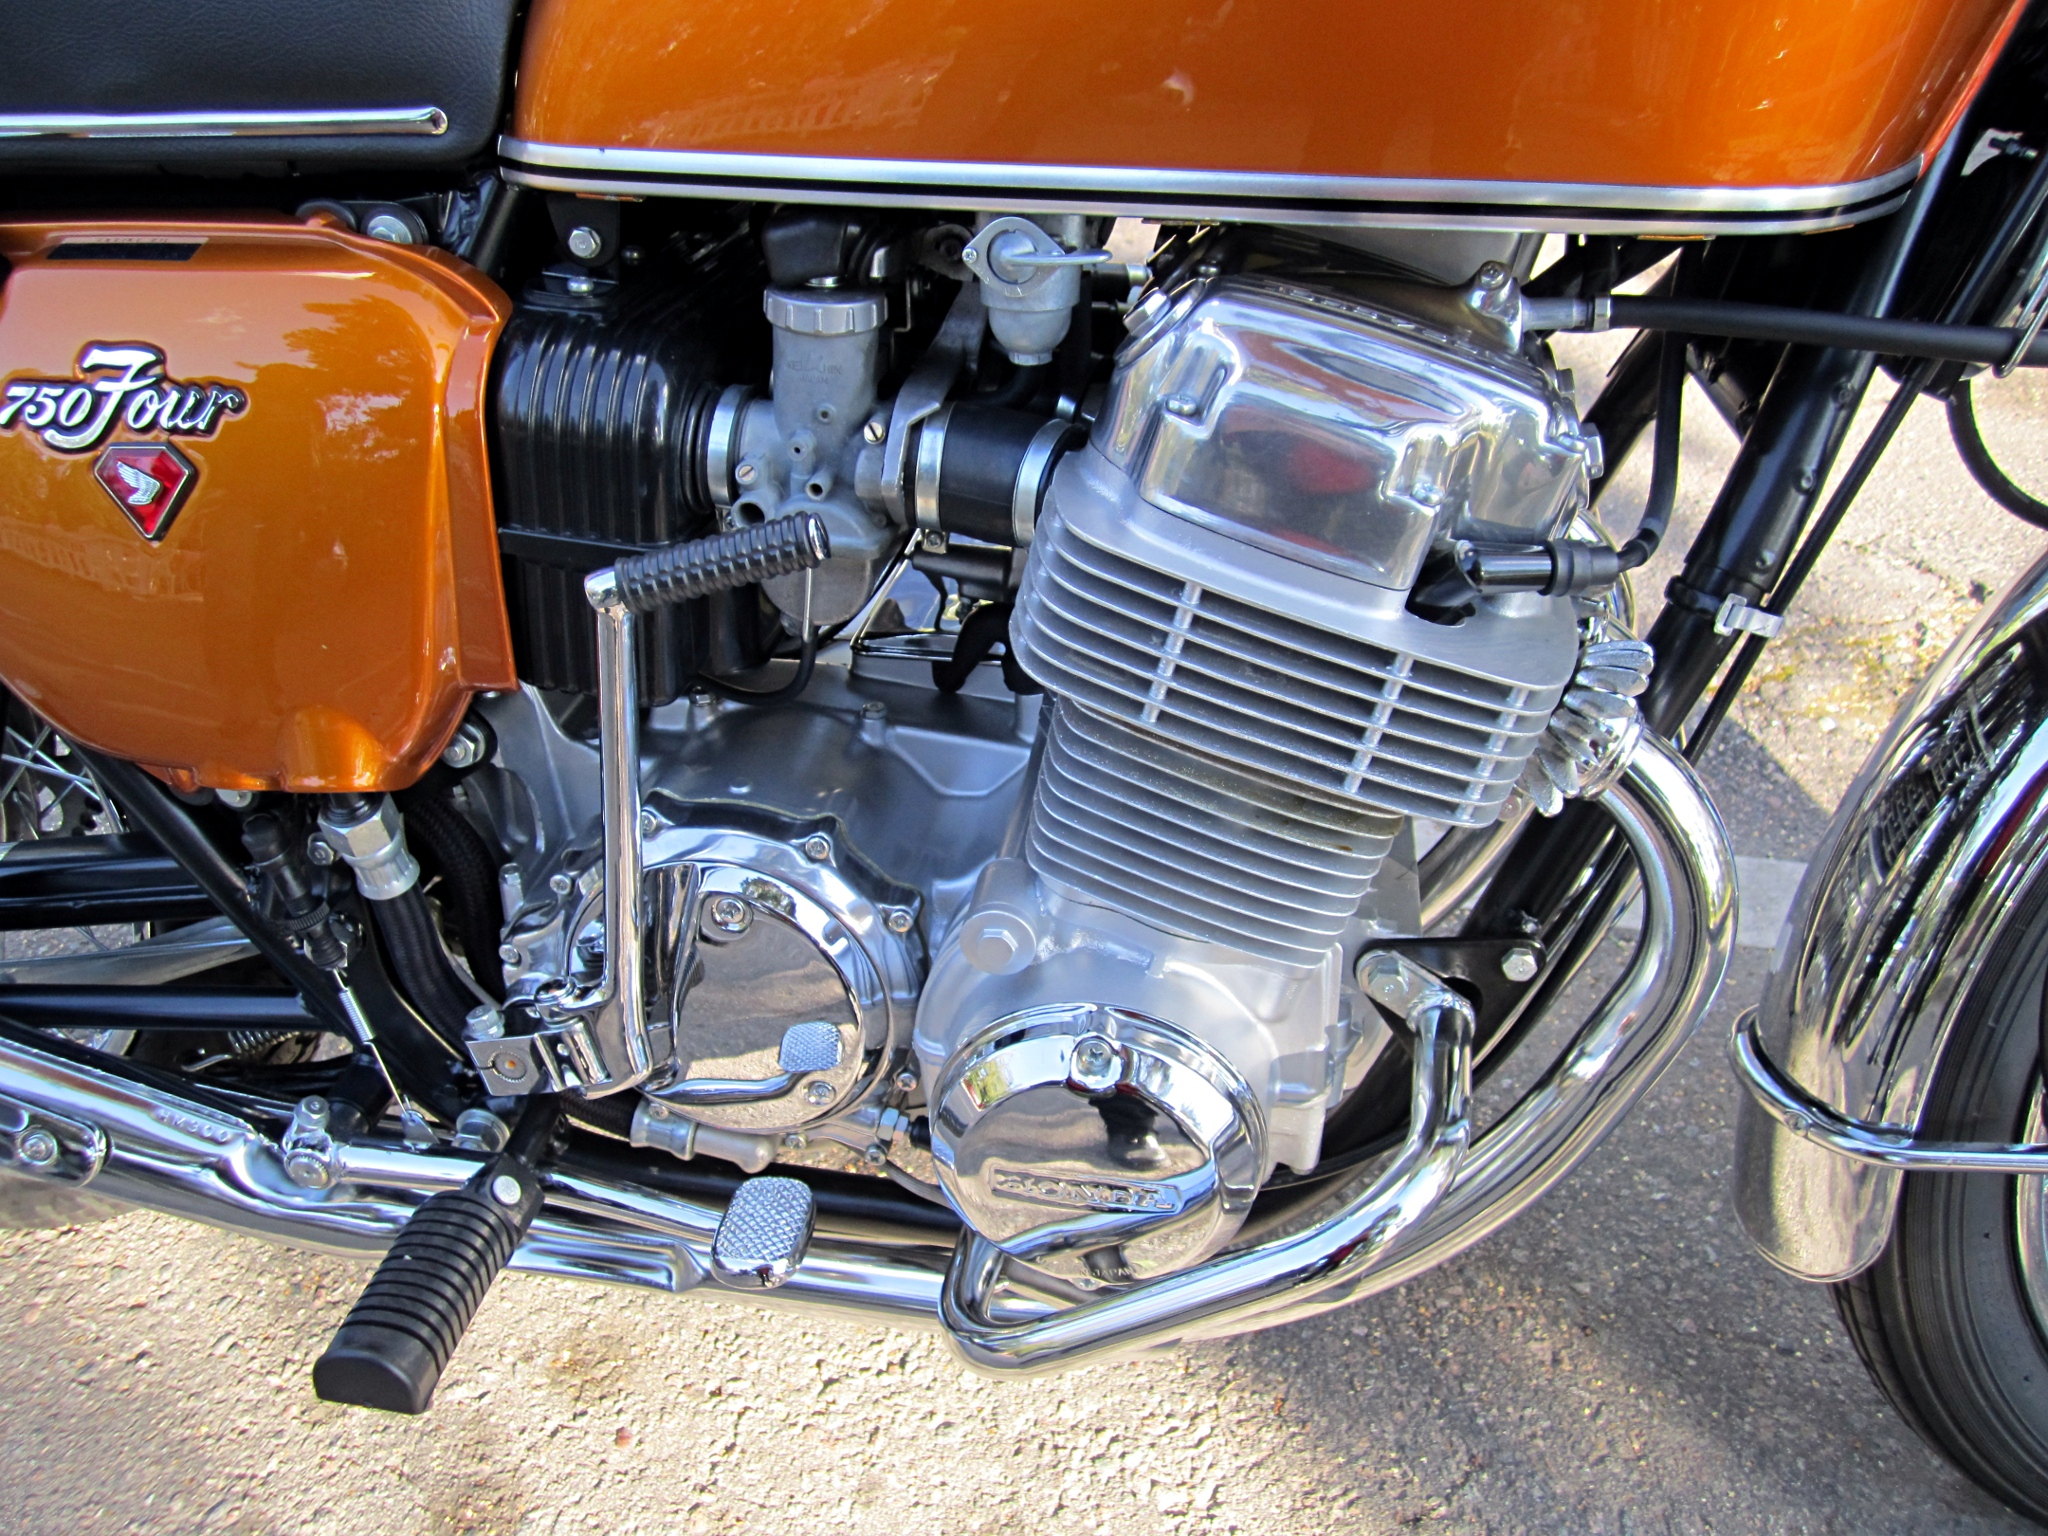 29367 Honda Crf 450 Turbo Motard besides 1980 S Honda Cb 900 Wiring Diagrams likewise File Honda CB750 Four K1 1971 Engine in addition Dream Wheels Heritage Xj750 Scrambler also 81 Yamaha Xs650 Modern Motor Cycle  pany. on cb 750 chopper